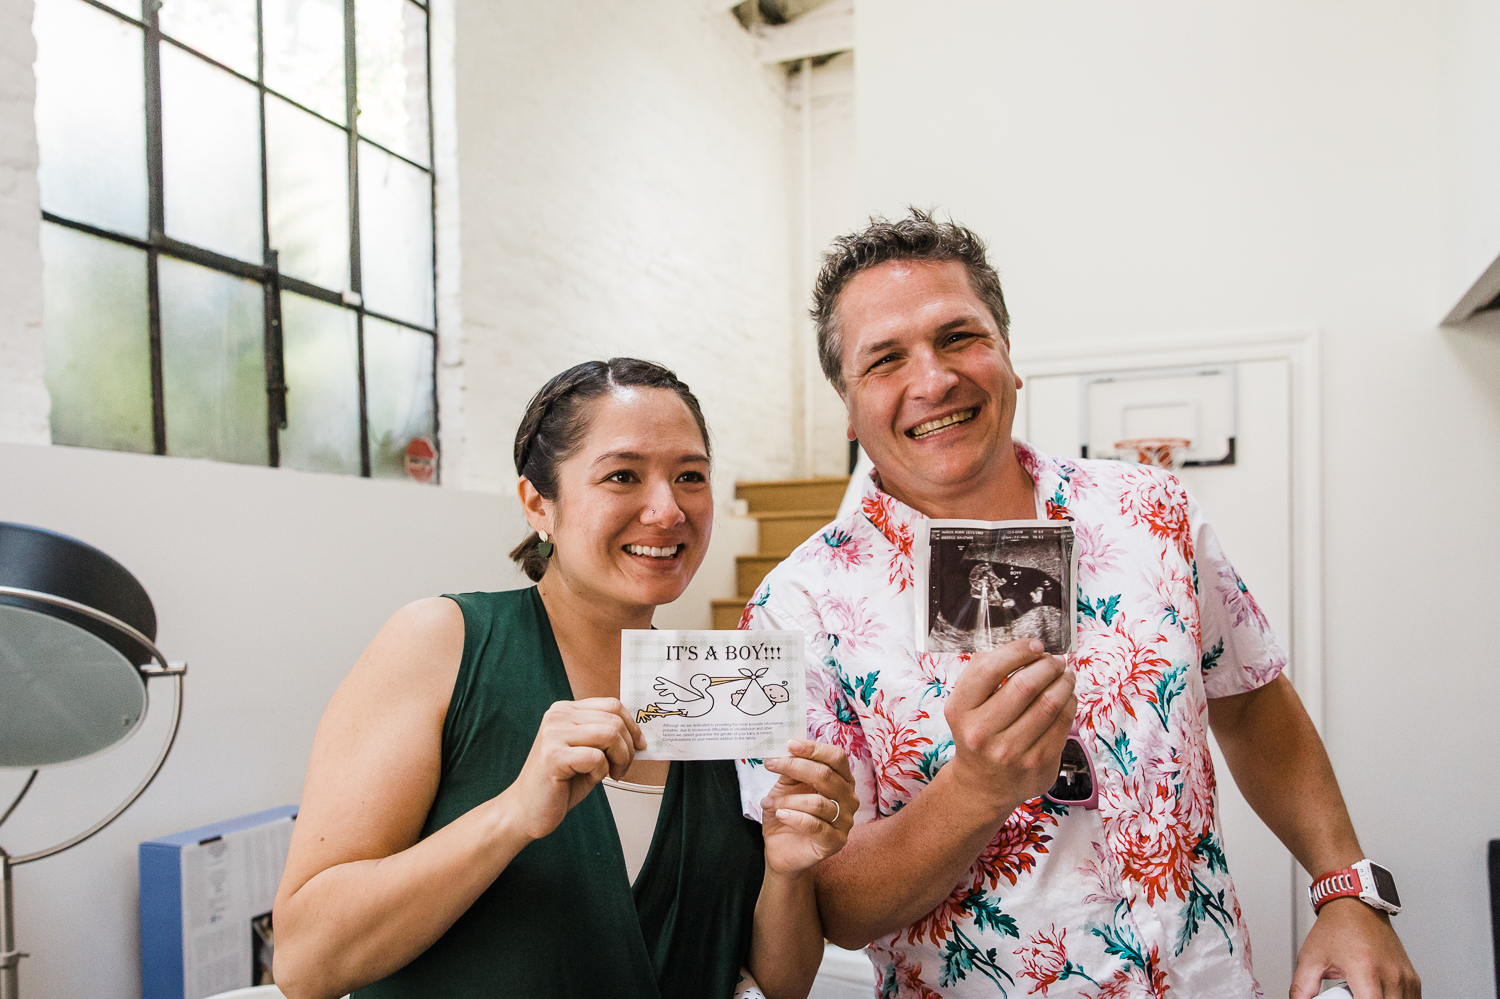 Soon to be parents reveal the gender and ultrasound photo {San Francisco Newborn Photographer}